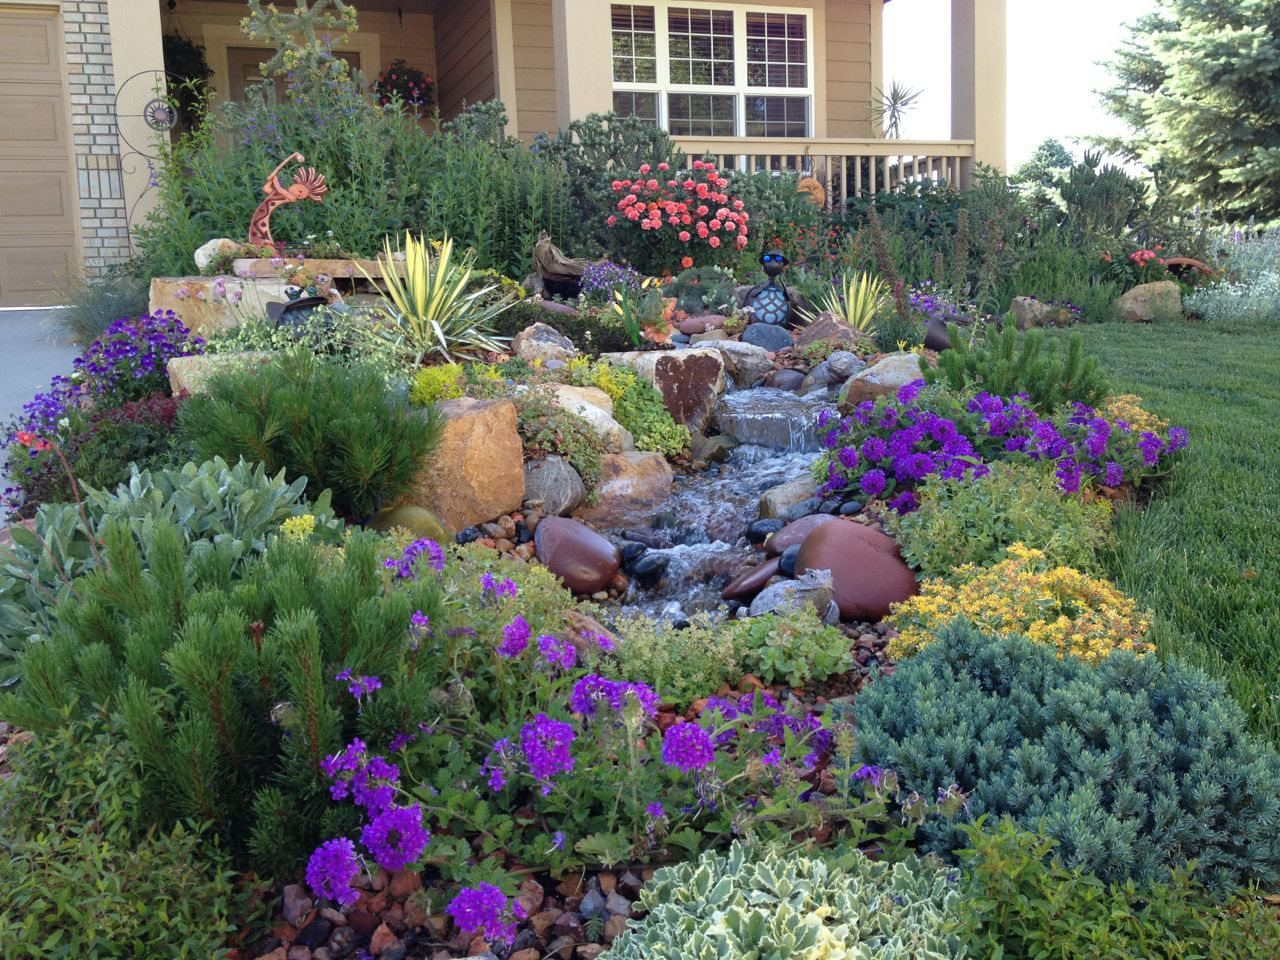 Front Yard Xeriscape Ideas Part - 41: Photo Courtesy Of Tanya Fisher, Colorado Vista Landscape Design .